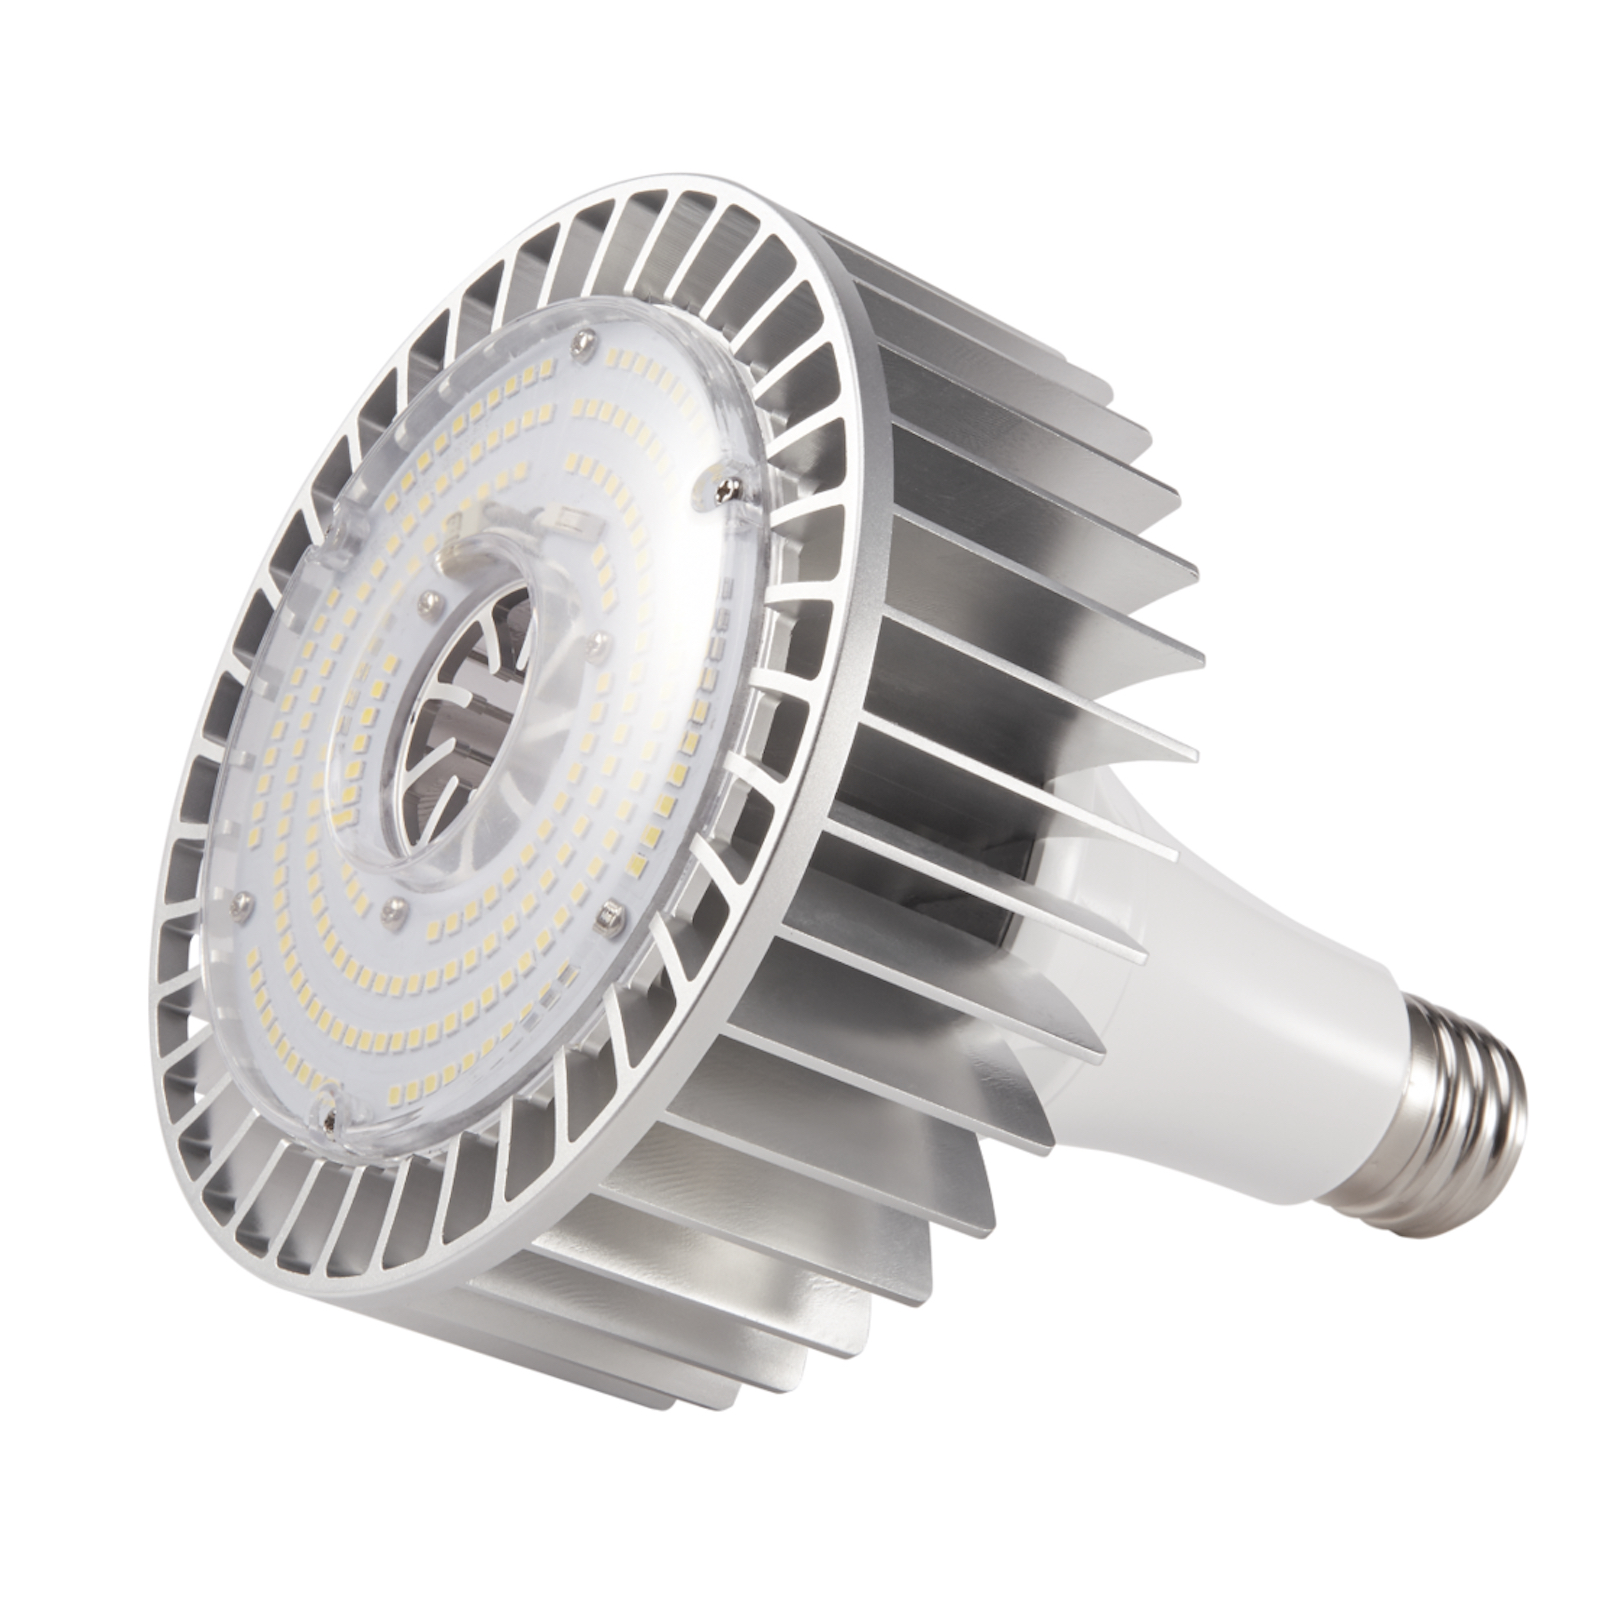 J Series LED High Bay Replacement Lamp